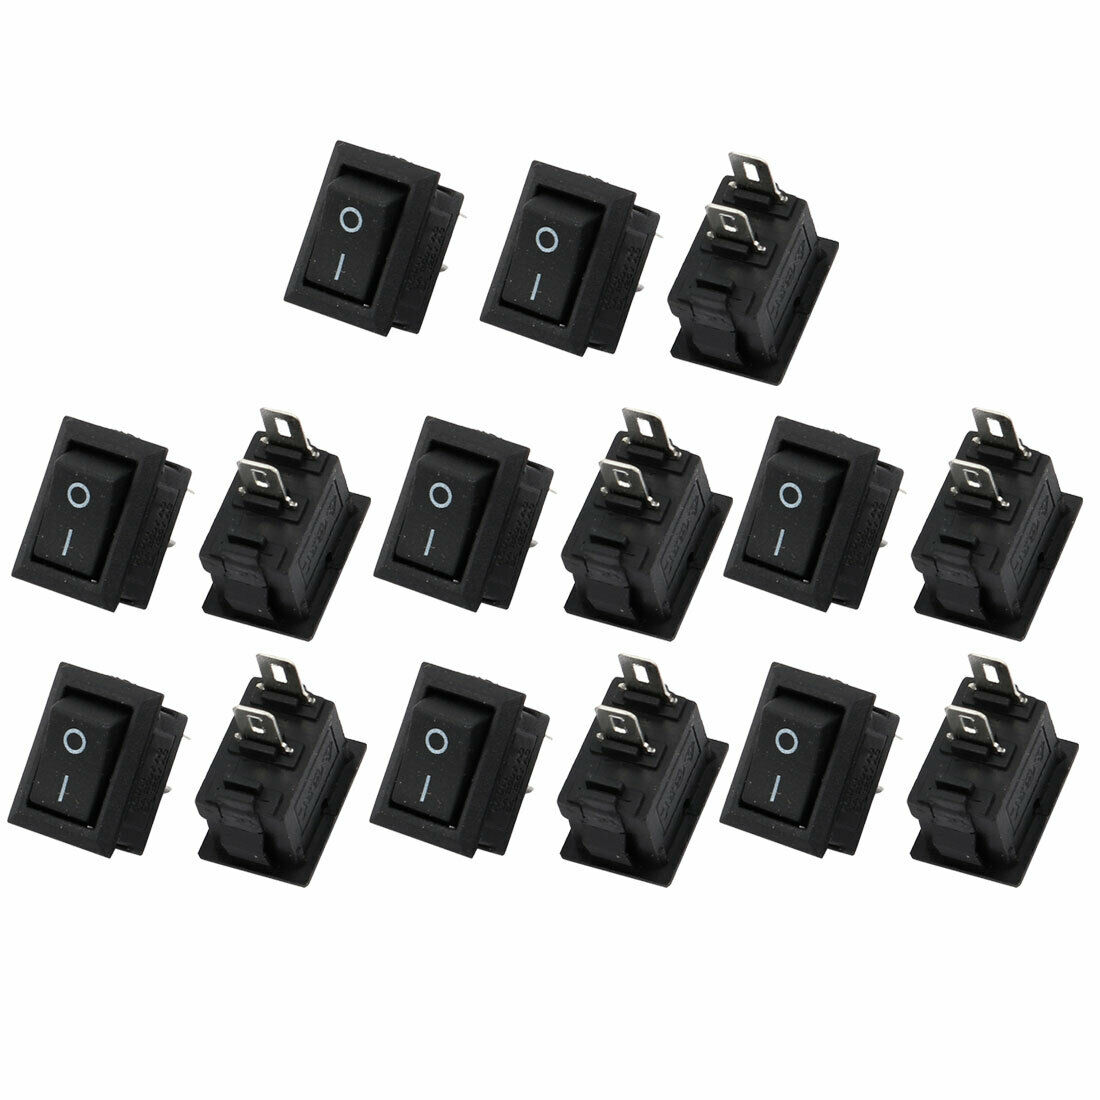 15pcs Kcd11 Ac 250v 3a Snap In Mounting 2 Position Spst Rocker Leviton White Decora Triple Wall Light Switch Triplex 15a 1755 1 Of 1only 4 Available